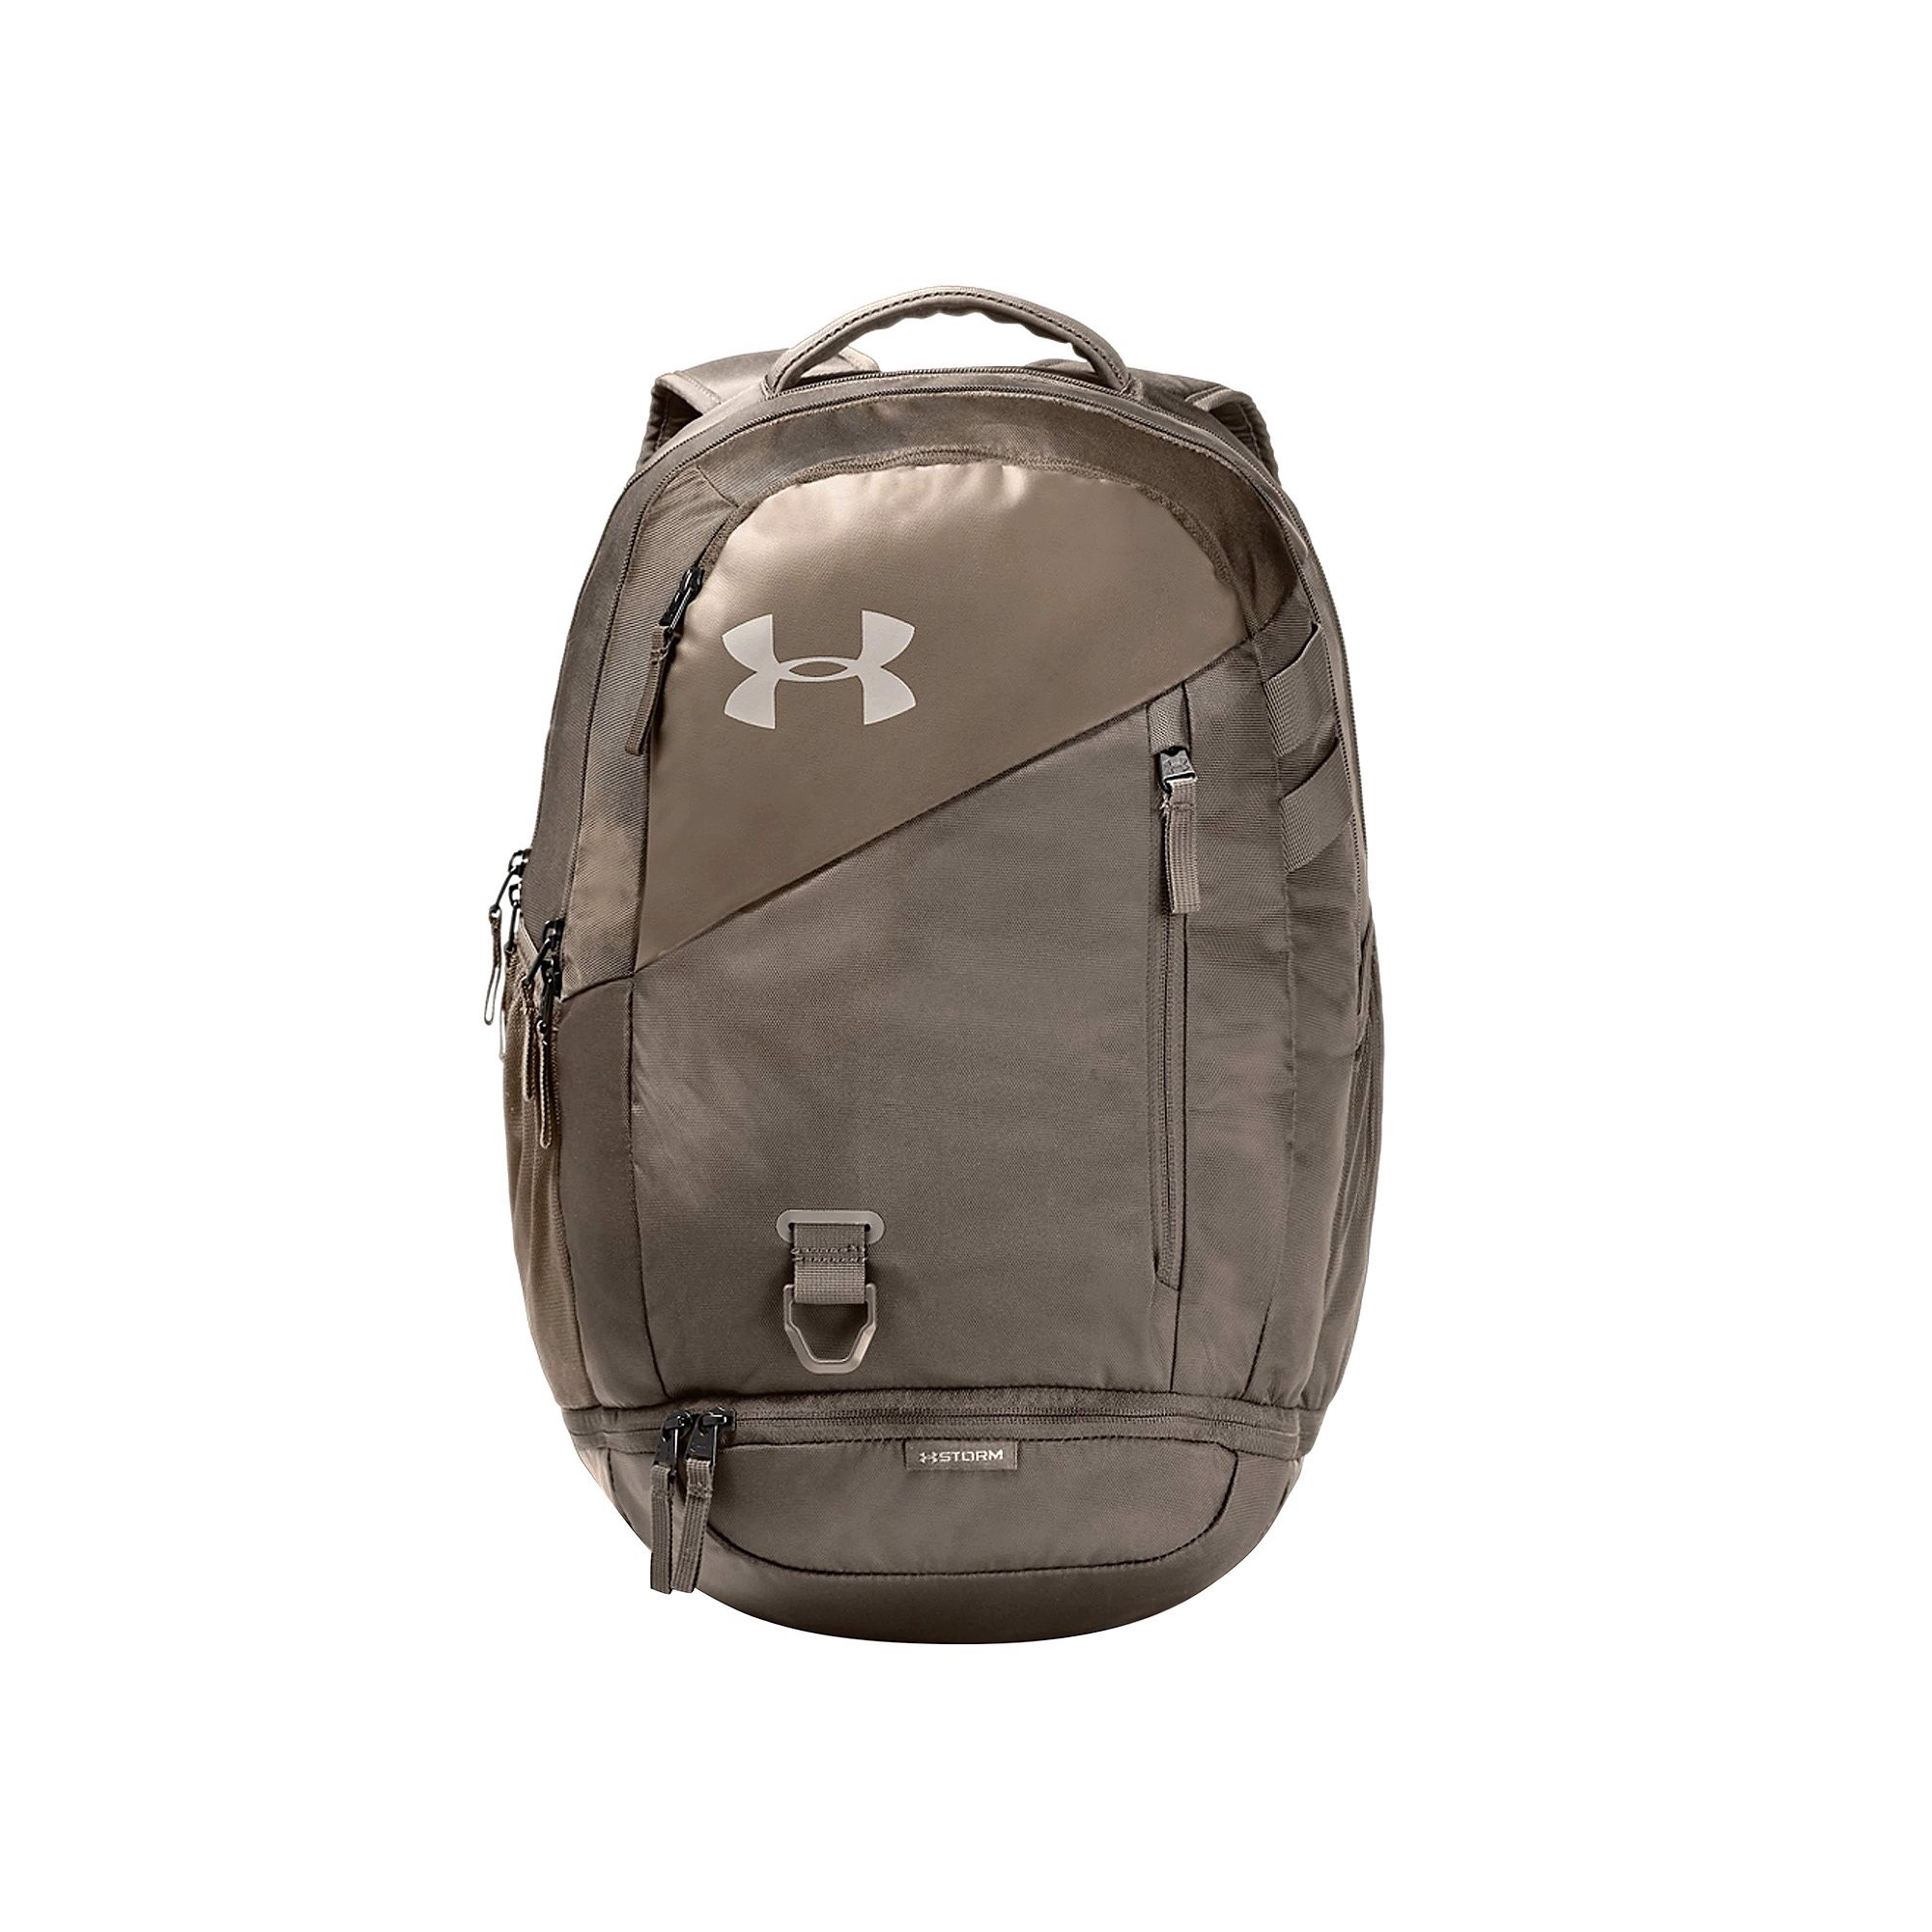 Under Armour - Ba lô nam nữ Acc Hustle 4.0 Backpack Training FW20-1342